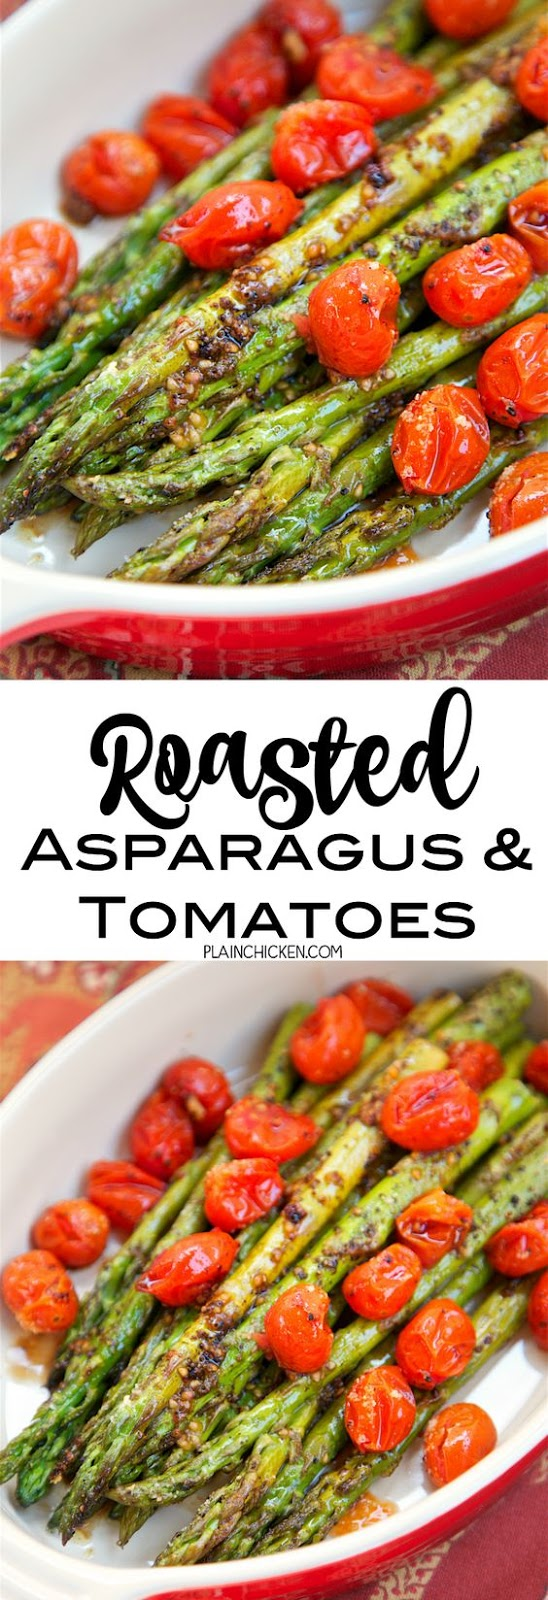 I don't know about you, but I am always looking for quick and easy side dishes. This recipe for Roasted Asparagus and Tomatoes is both quick and easy! It is also really delicious. It literally takes one minute to toss together and it is ready to eat in 15 minutes! LOVE!